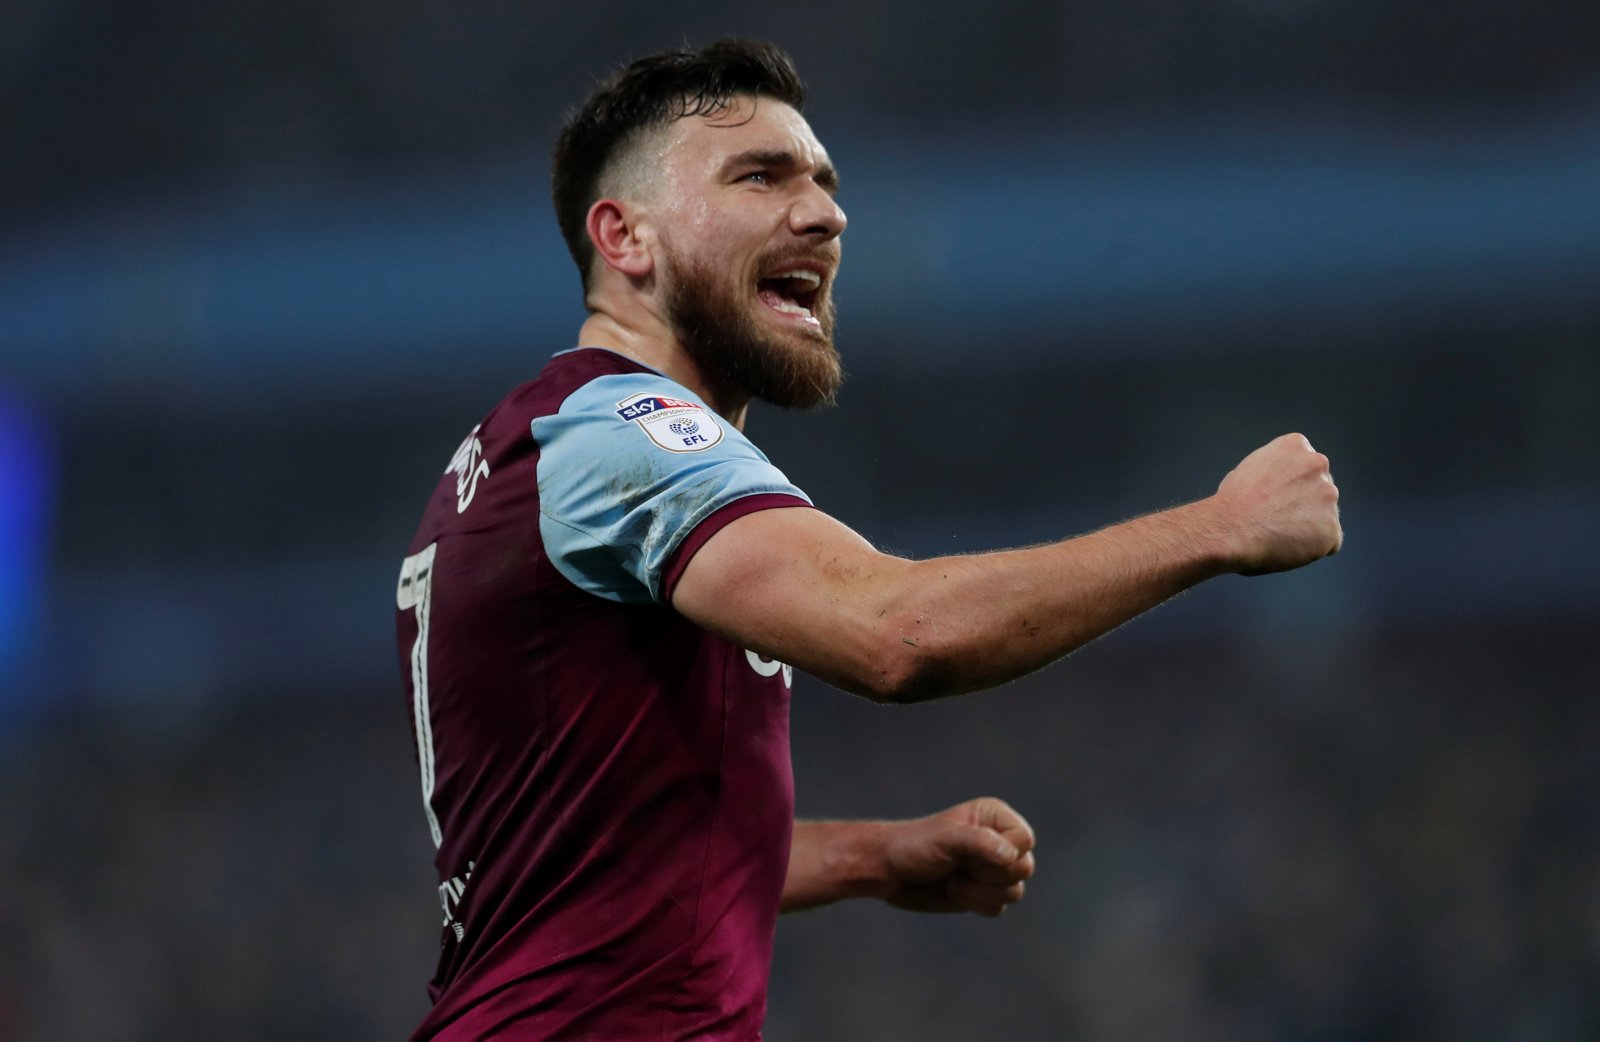 Re-signing Robert Snodgrass could be the best piece of business Aston Villa conduct this month